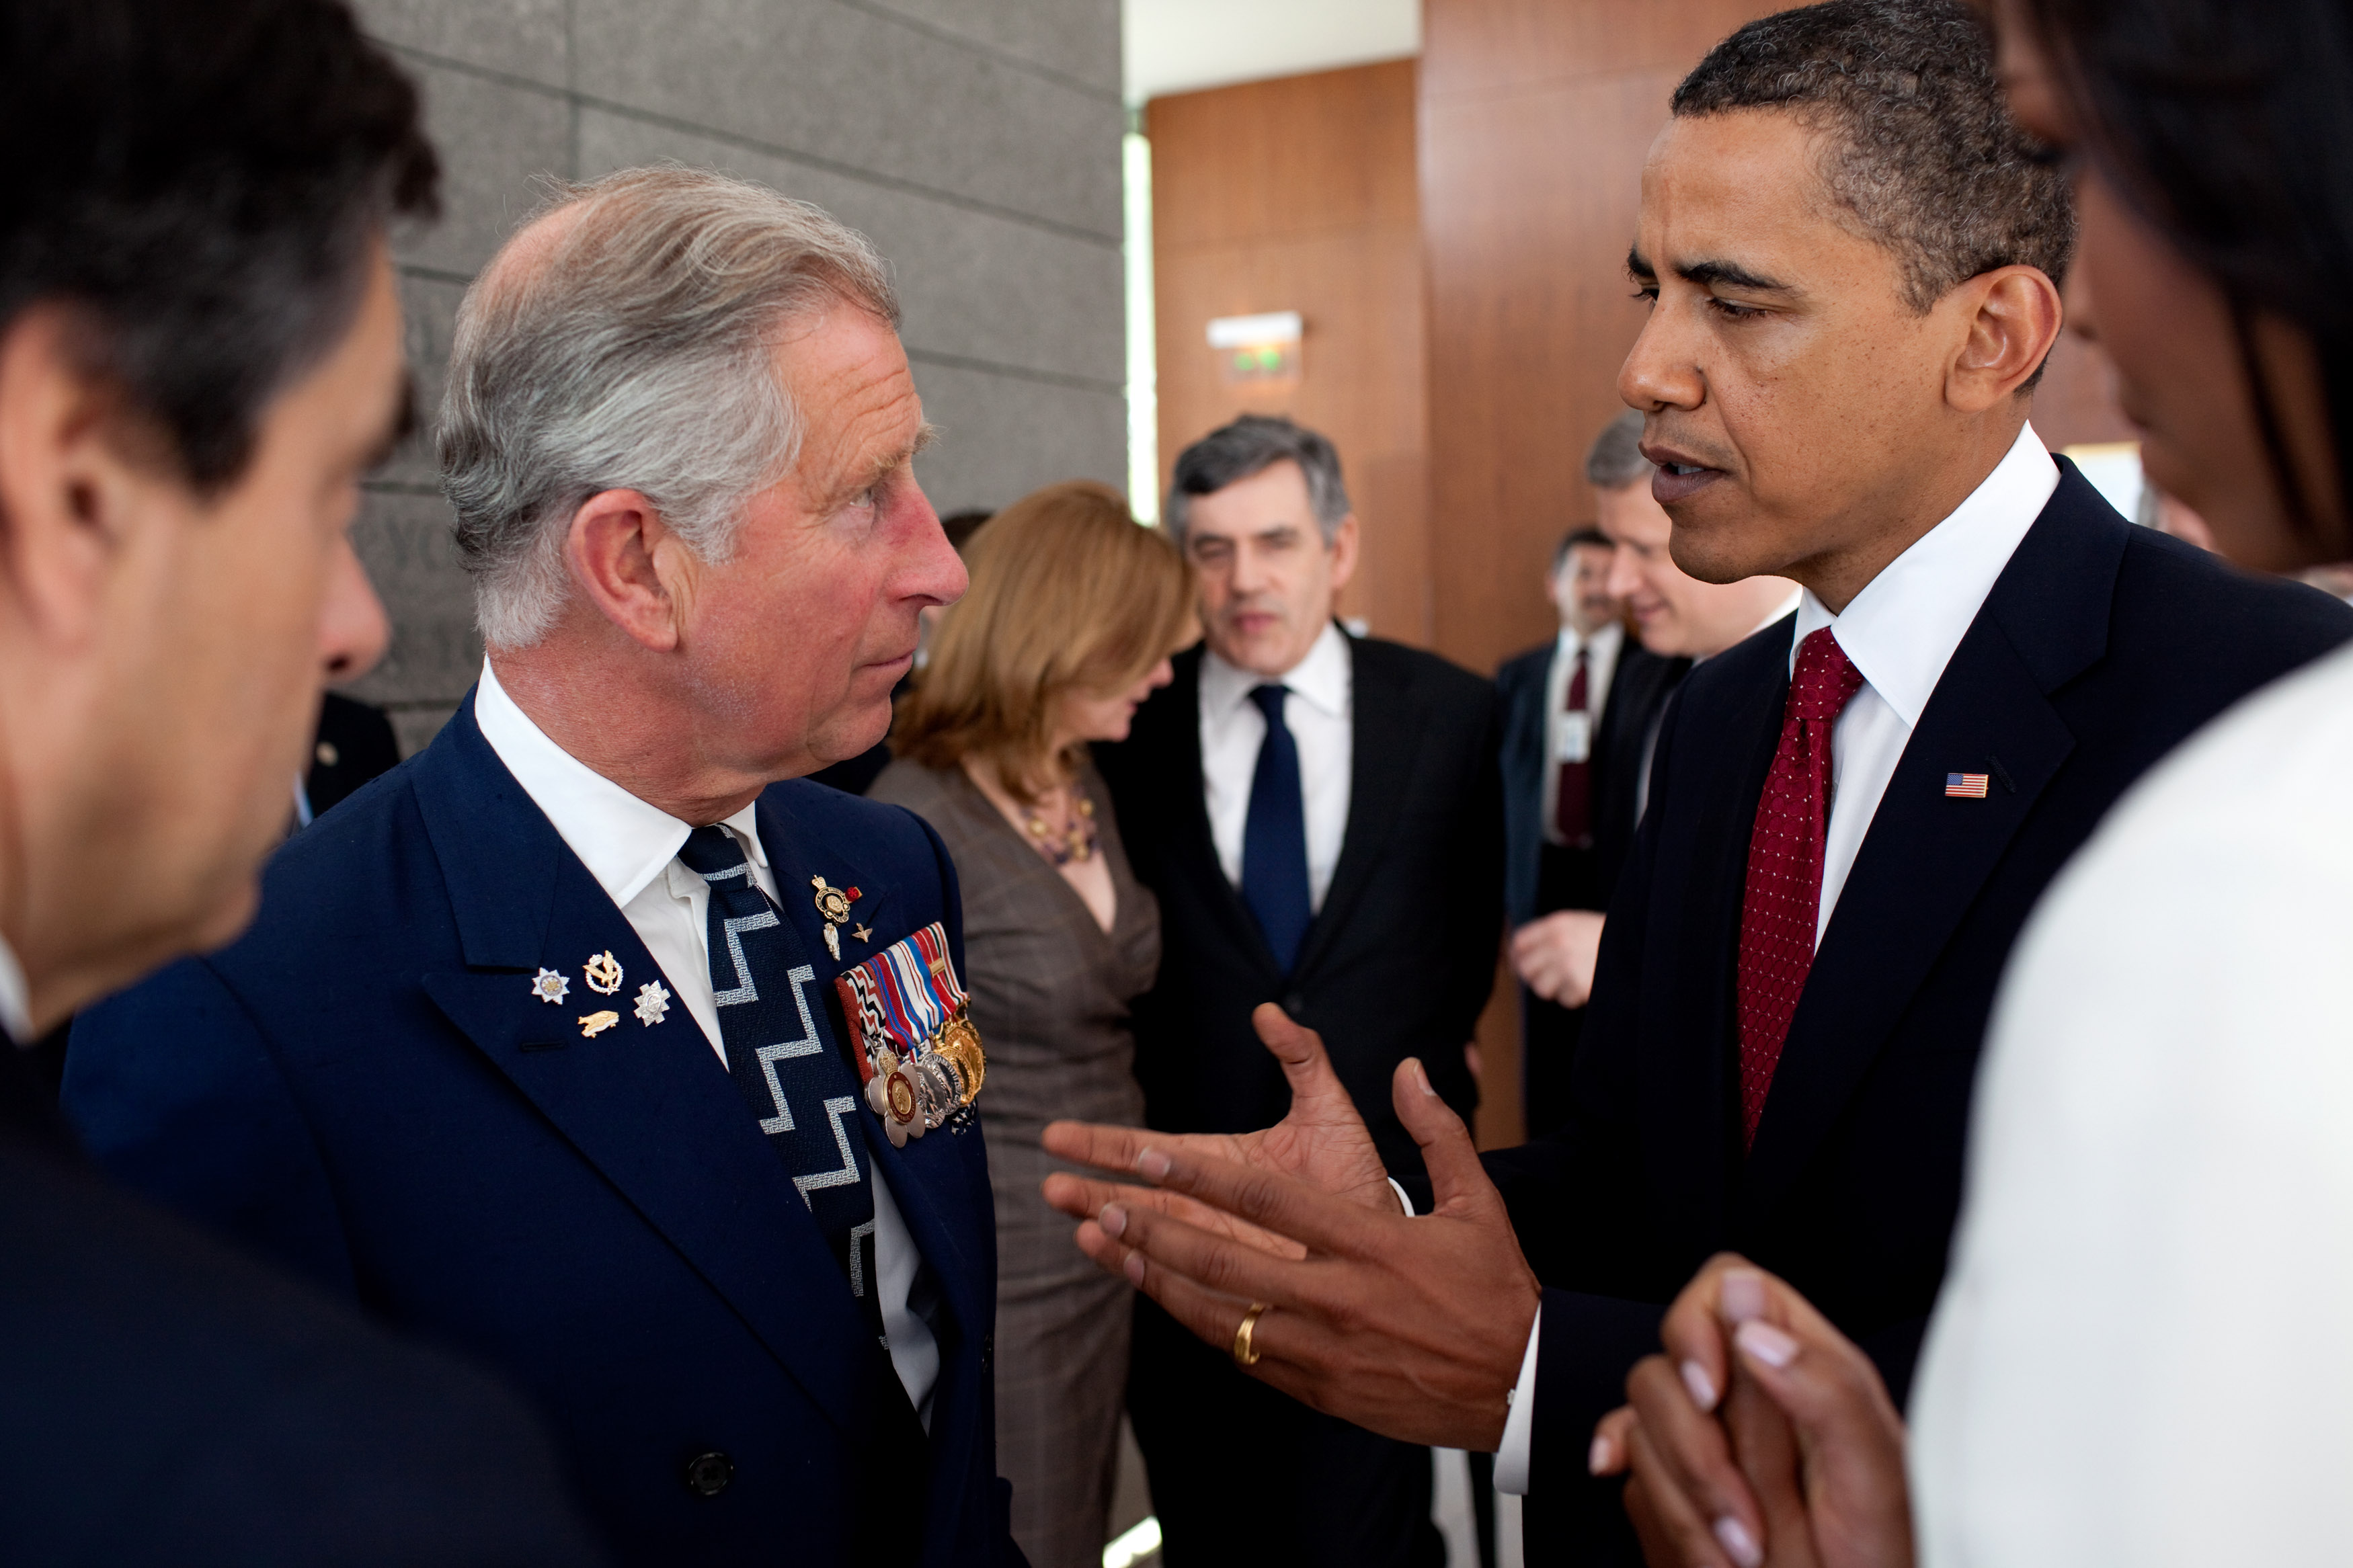 0519-0908-3119-5100_president_barack_obama_talking_with_prince_charles_at_the_normandy_cemetery_colleville_sur_mer_france_o